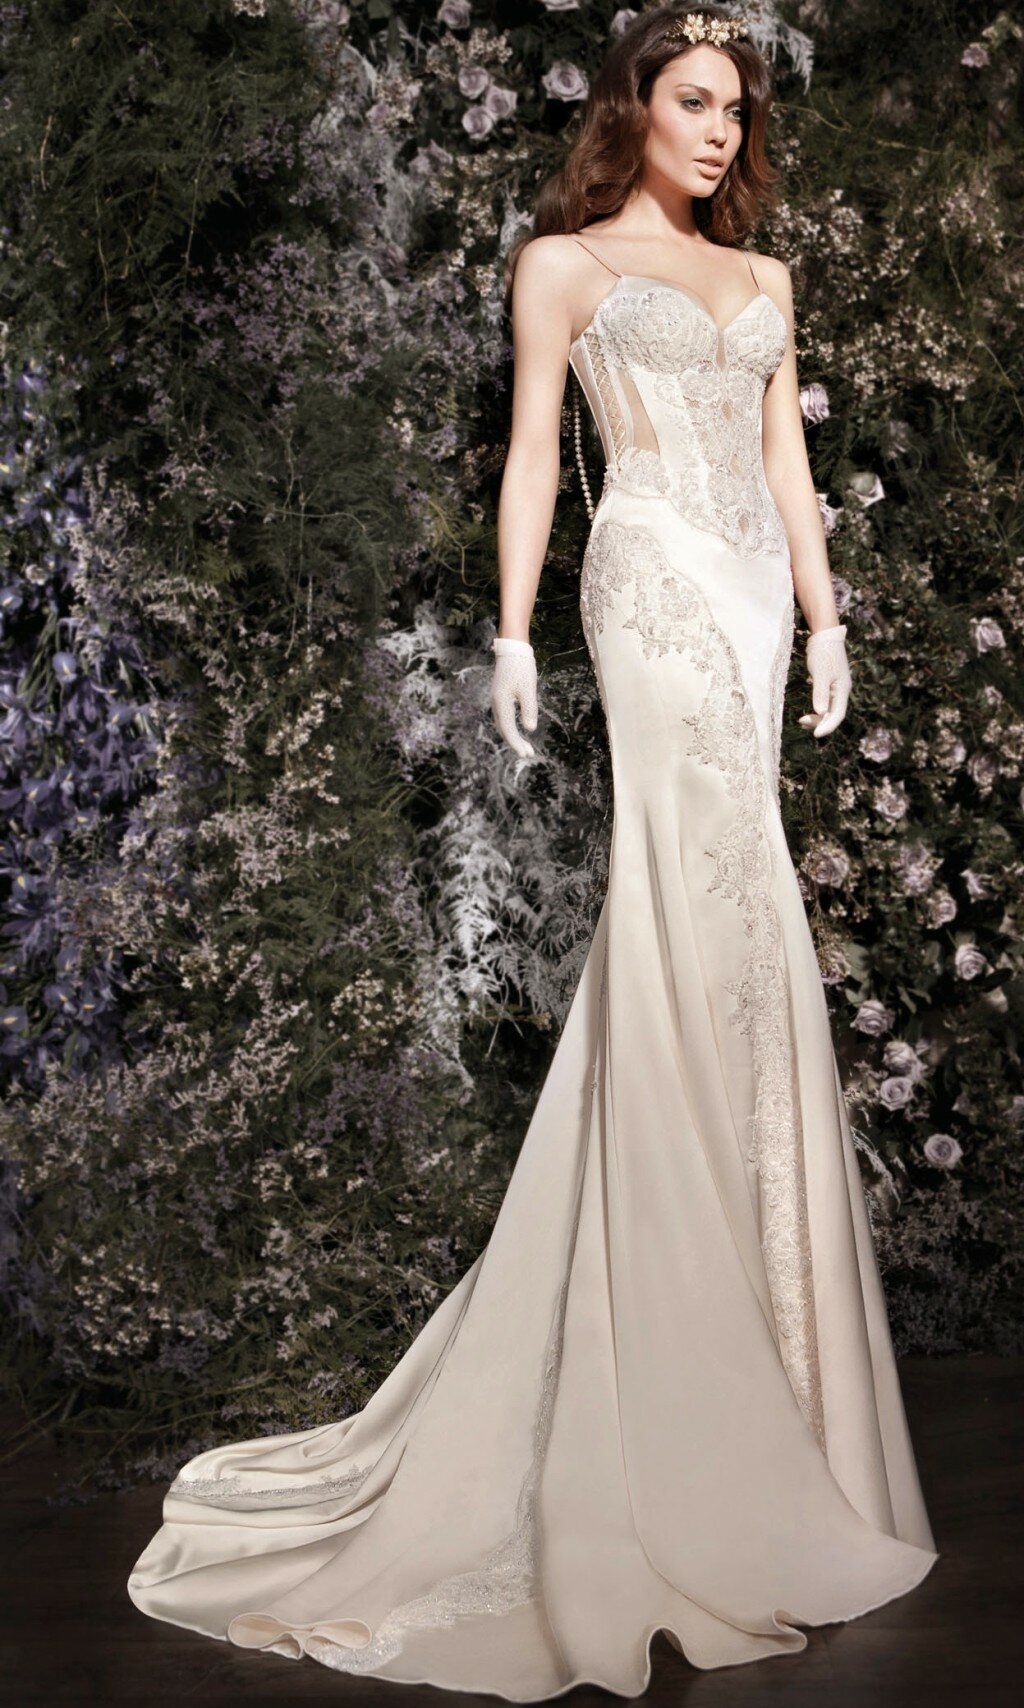 wedding dresses for petite women: pictures ideas, guide to buying